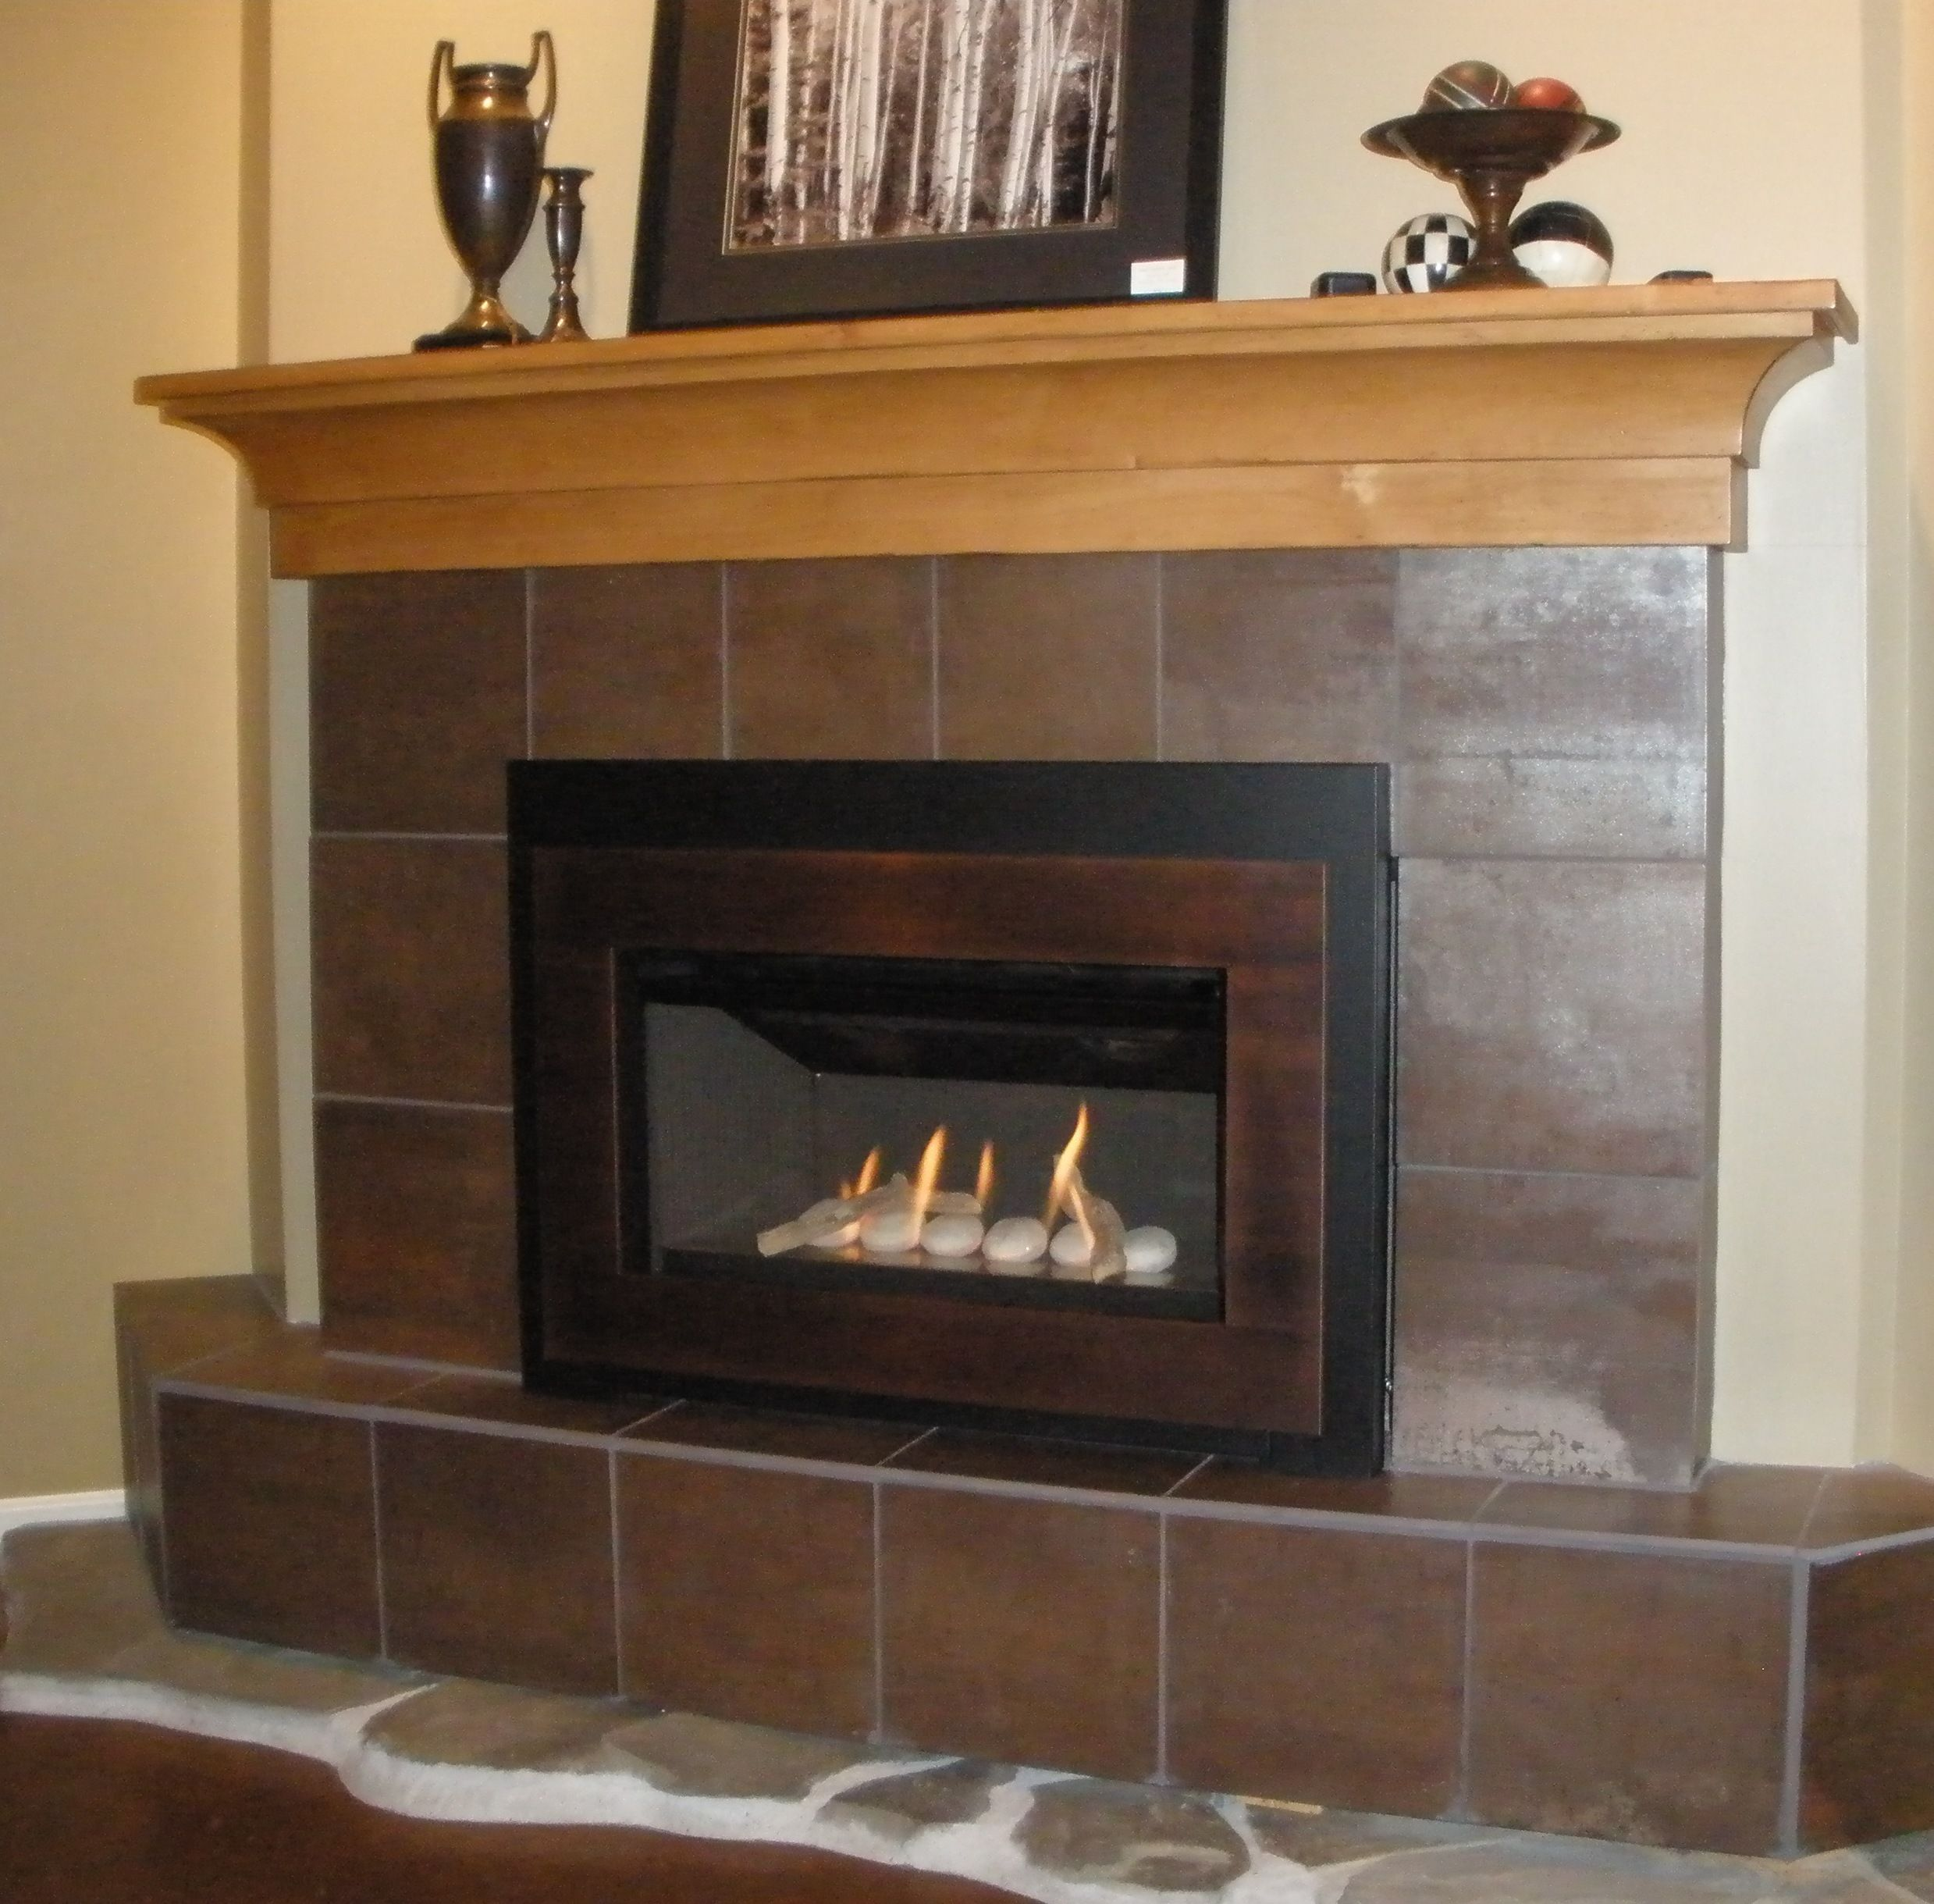 Valor G3 739irn Gas Fireplace Insert With Creekside Rock